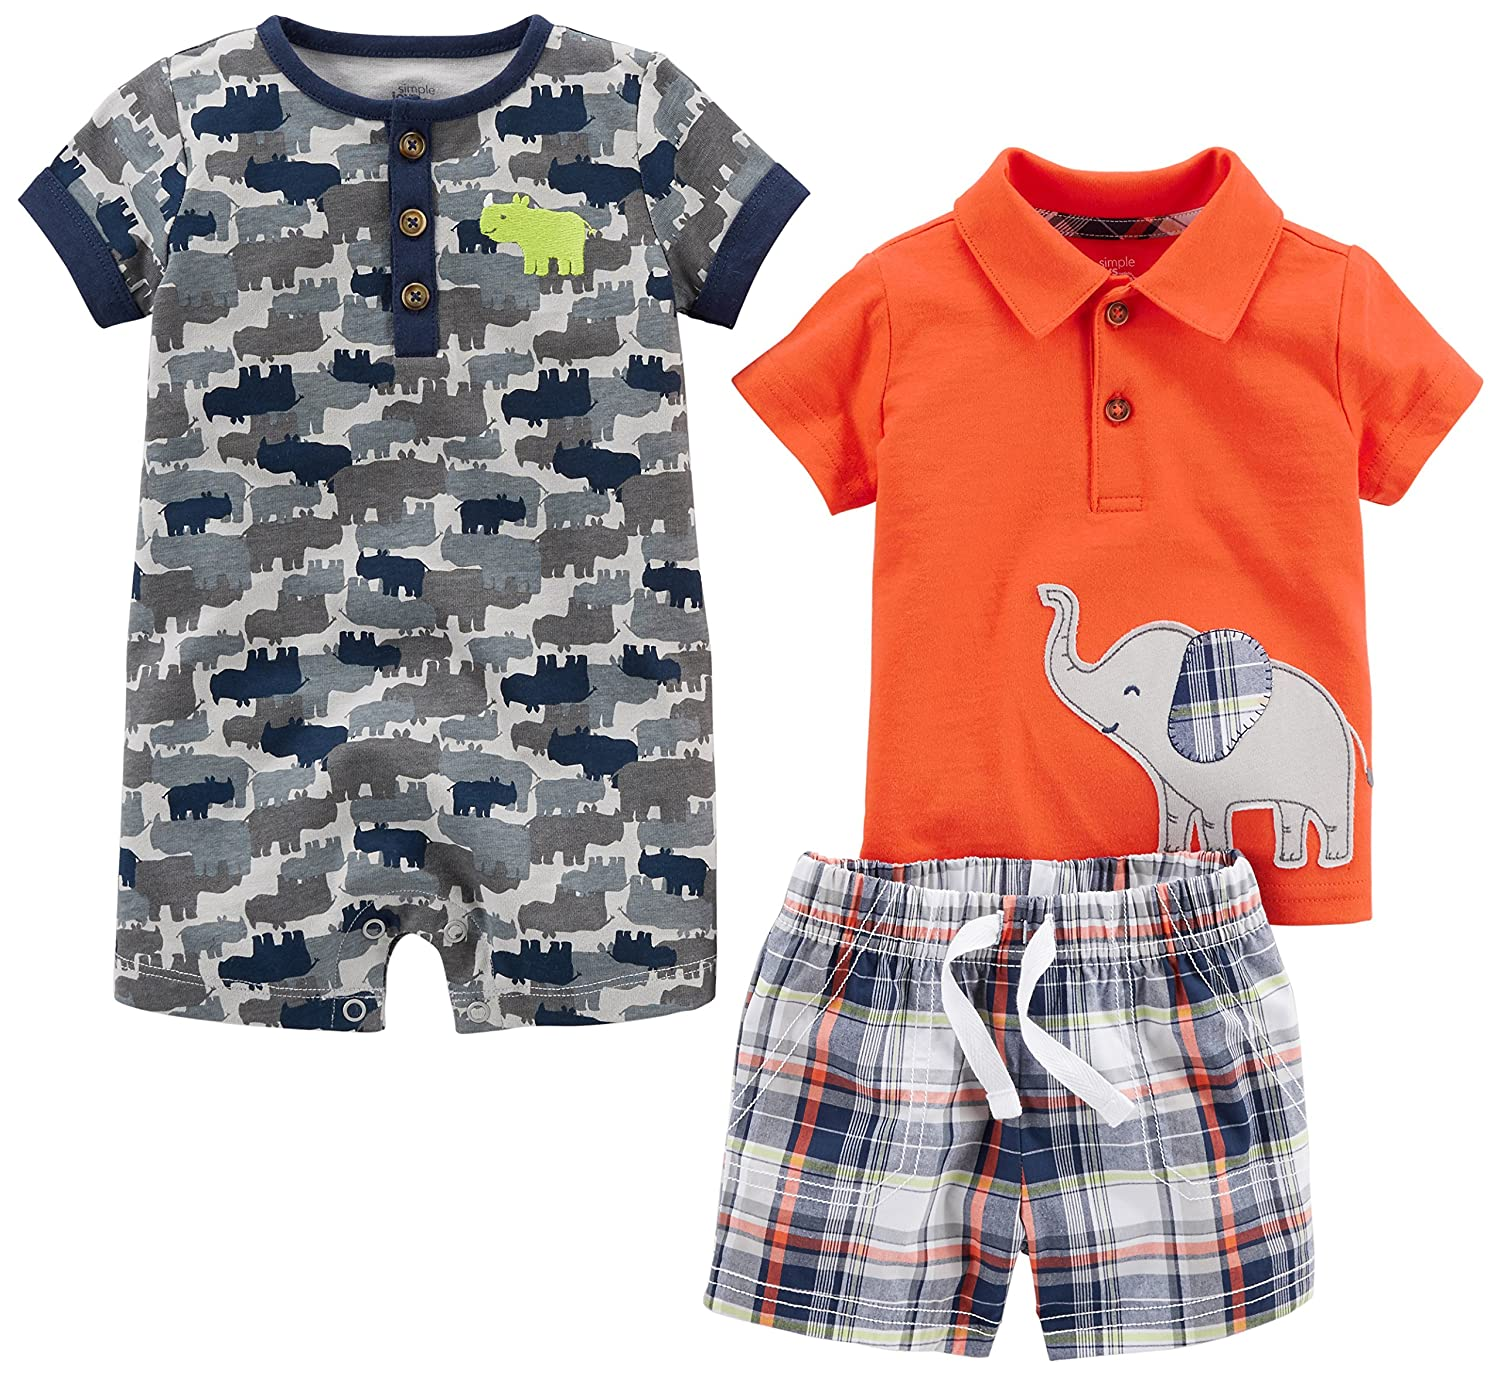 Shorts Private Label 3PCPWSET-1 and Shirt Carter/'s Simple Joys Simple Joys by Carters Baby Boys 3-Piece Fleece Playwear Set-Romper